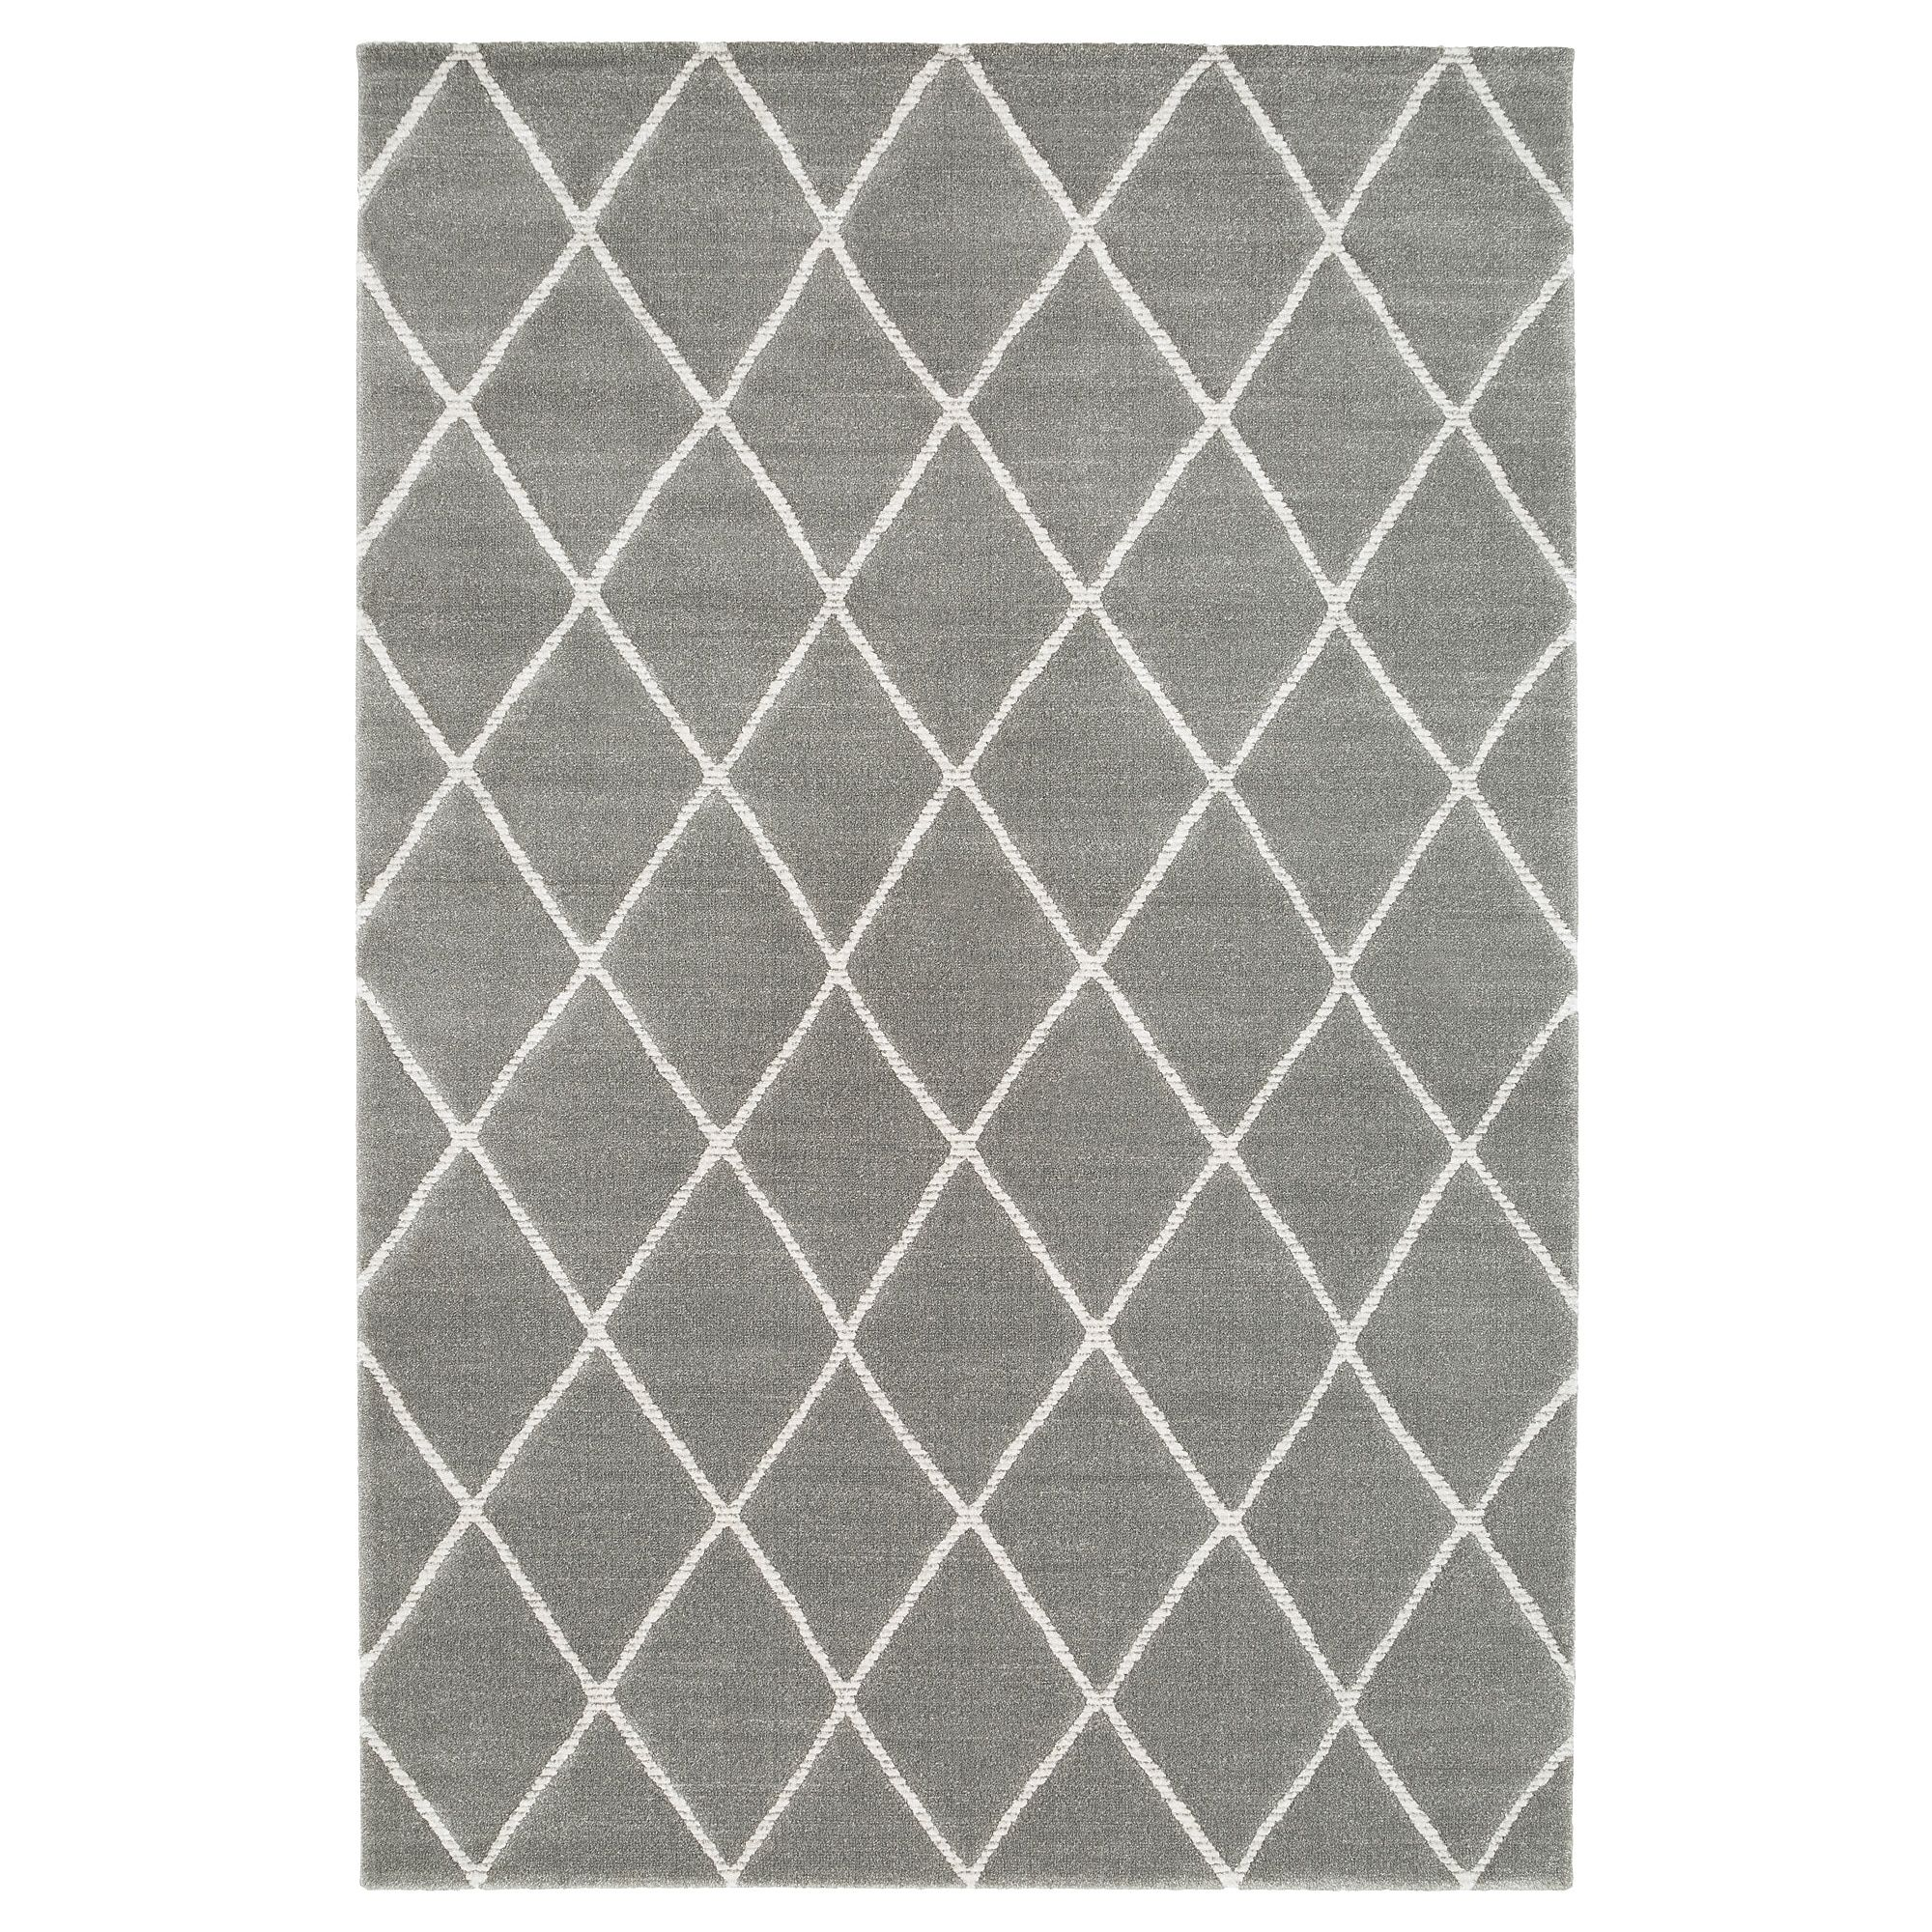 Ikea Vantore Rug Low Pile Gray White Diamond Pattern